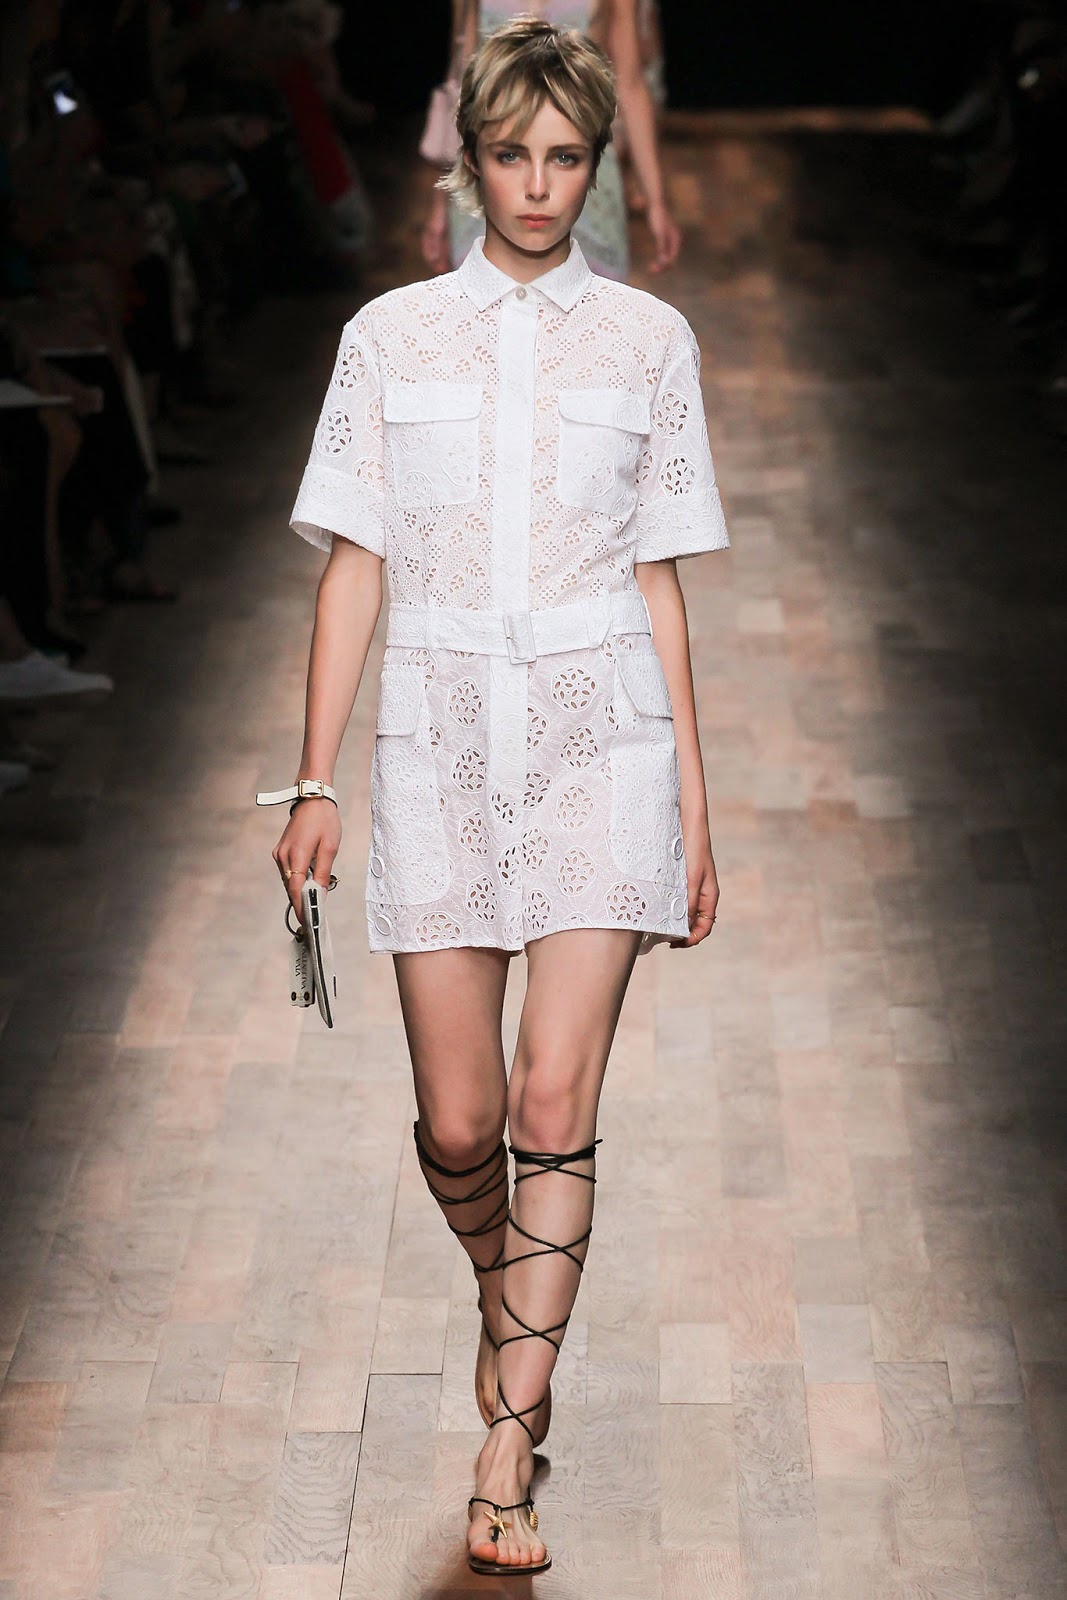 spring/summer 2015 trends / shirtdress / history of shirt dress / valentino spring 2015 / via fashioned by love british fashion blog